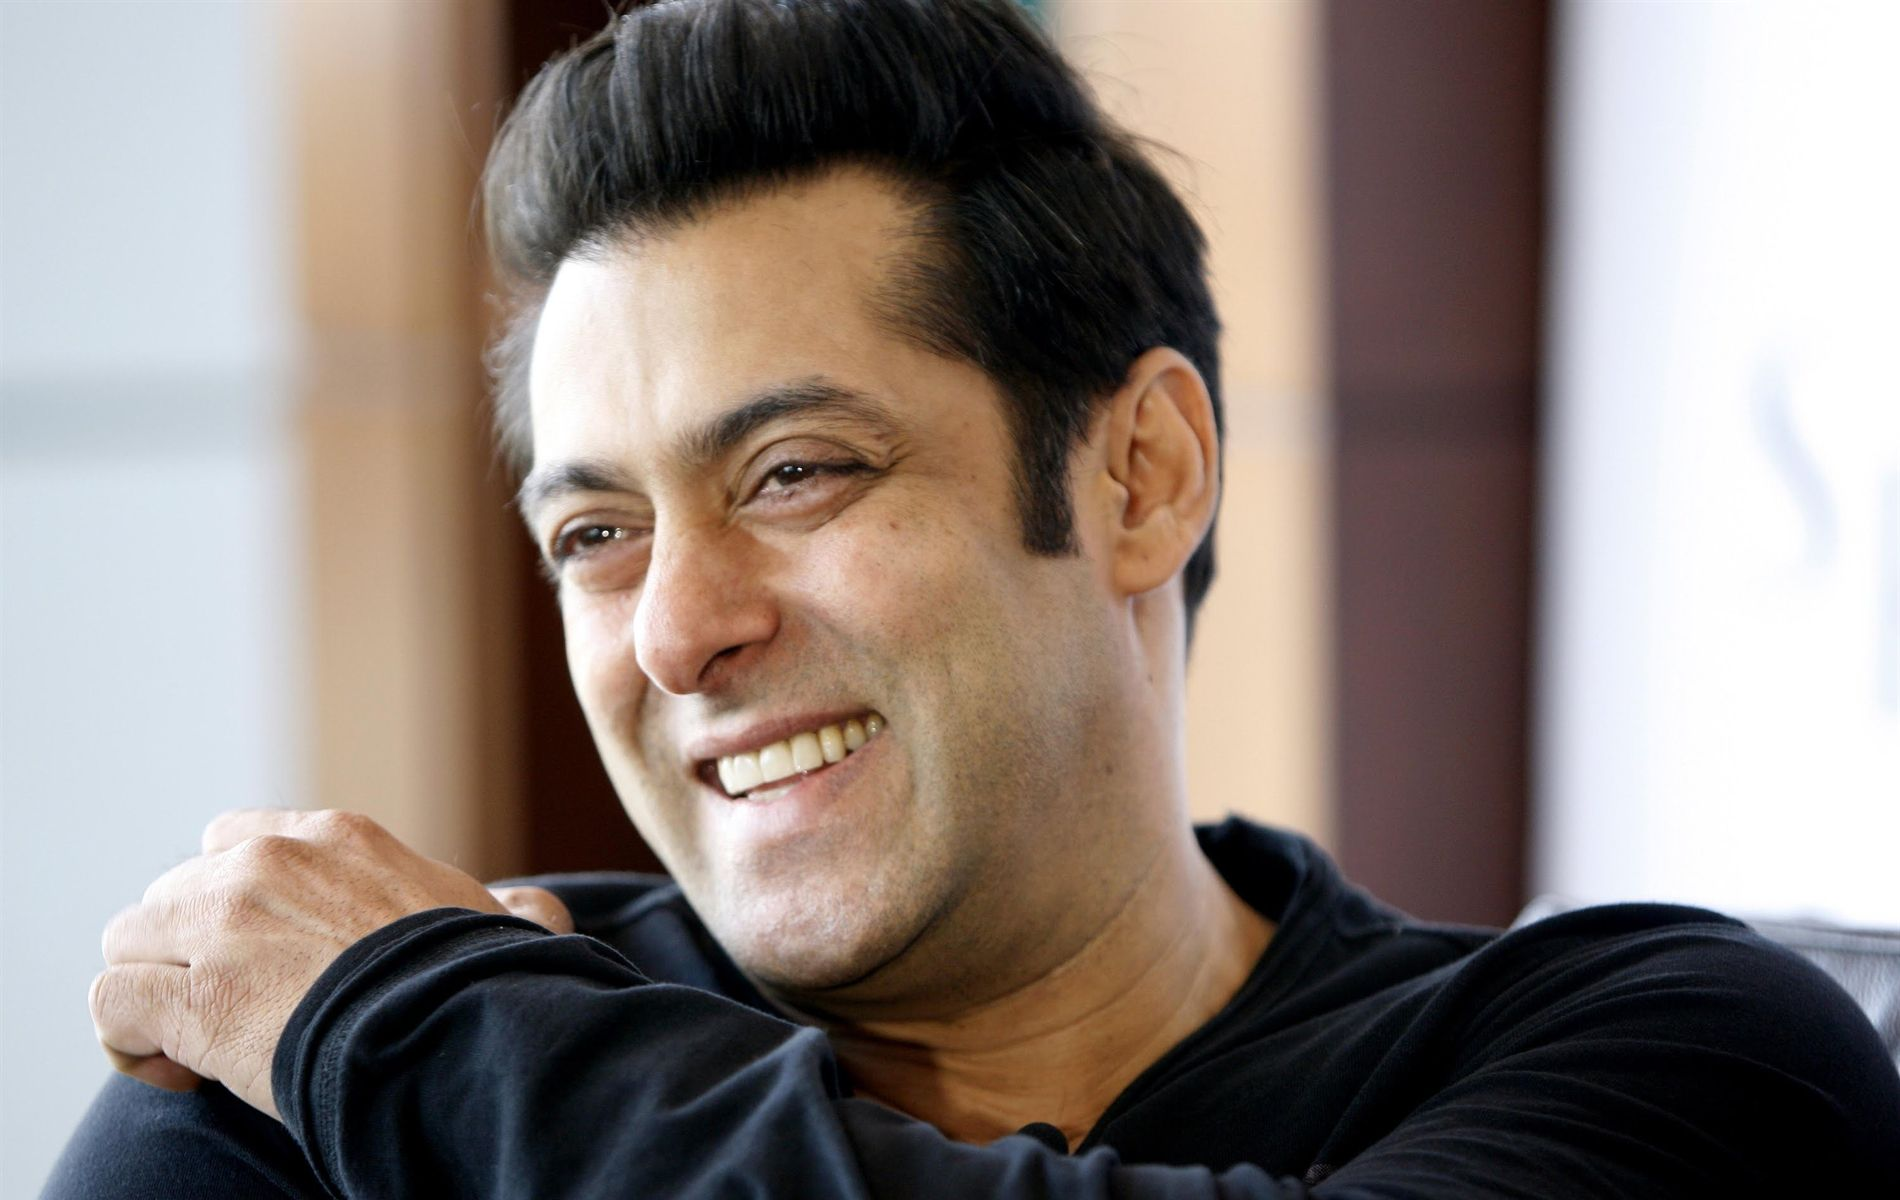 Salman Khan Biography, Age, Height, Weight, Affairs & More